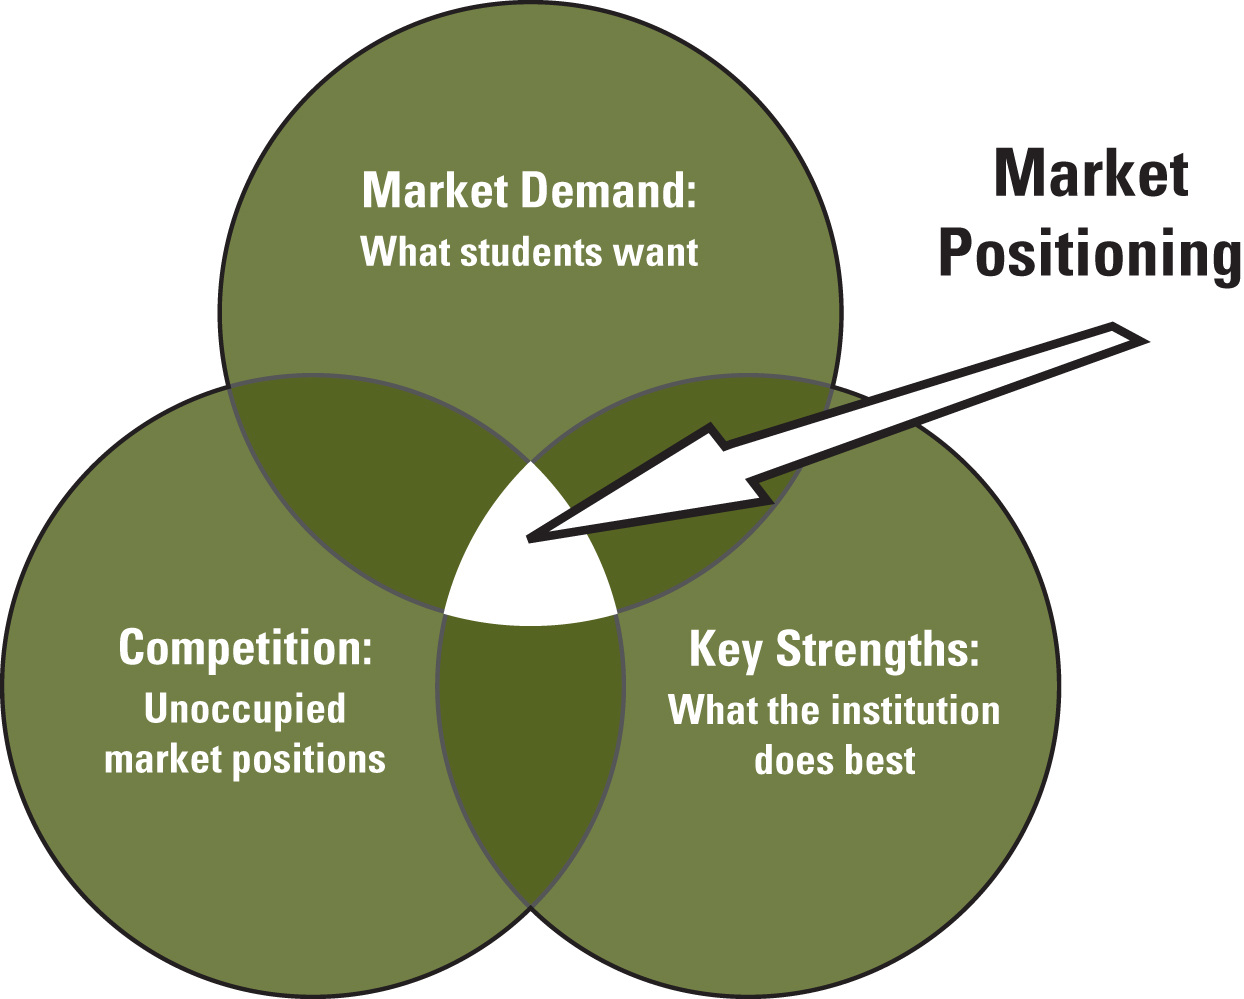 positioning in rural marketing The term positioning is widely used within the marketing and advertising communities today, and its meaning has expanded beyond the narrow definitions of trout and ries positioning is often used nowadays as a broad synonym for marketing strategy.